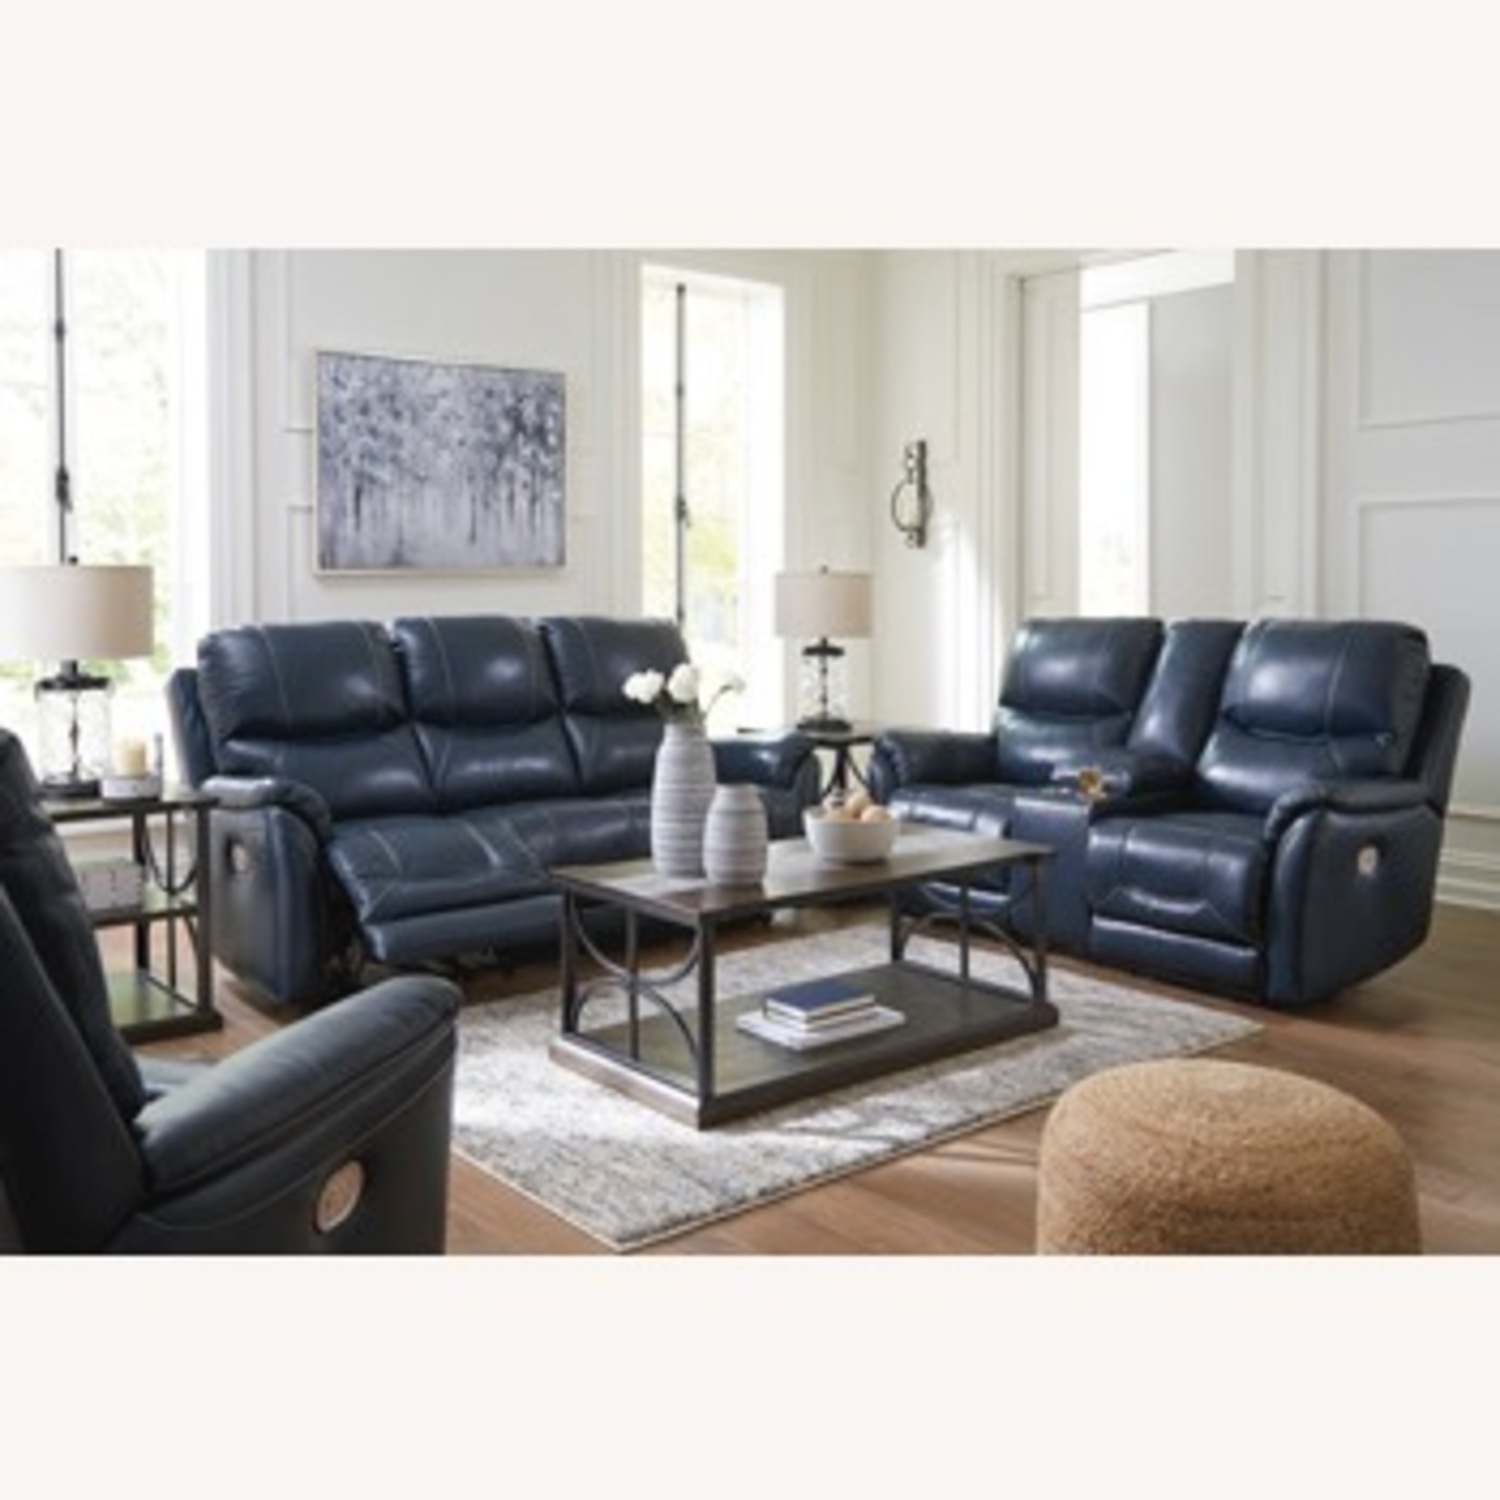 Ashley Furniture Genuine Leather Power Reclining Sofa - image-5